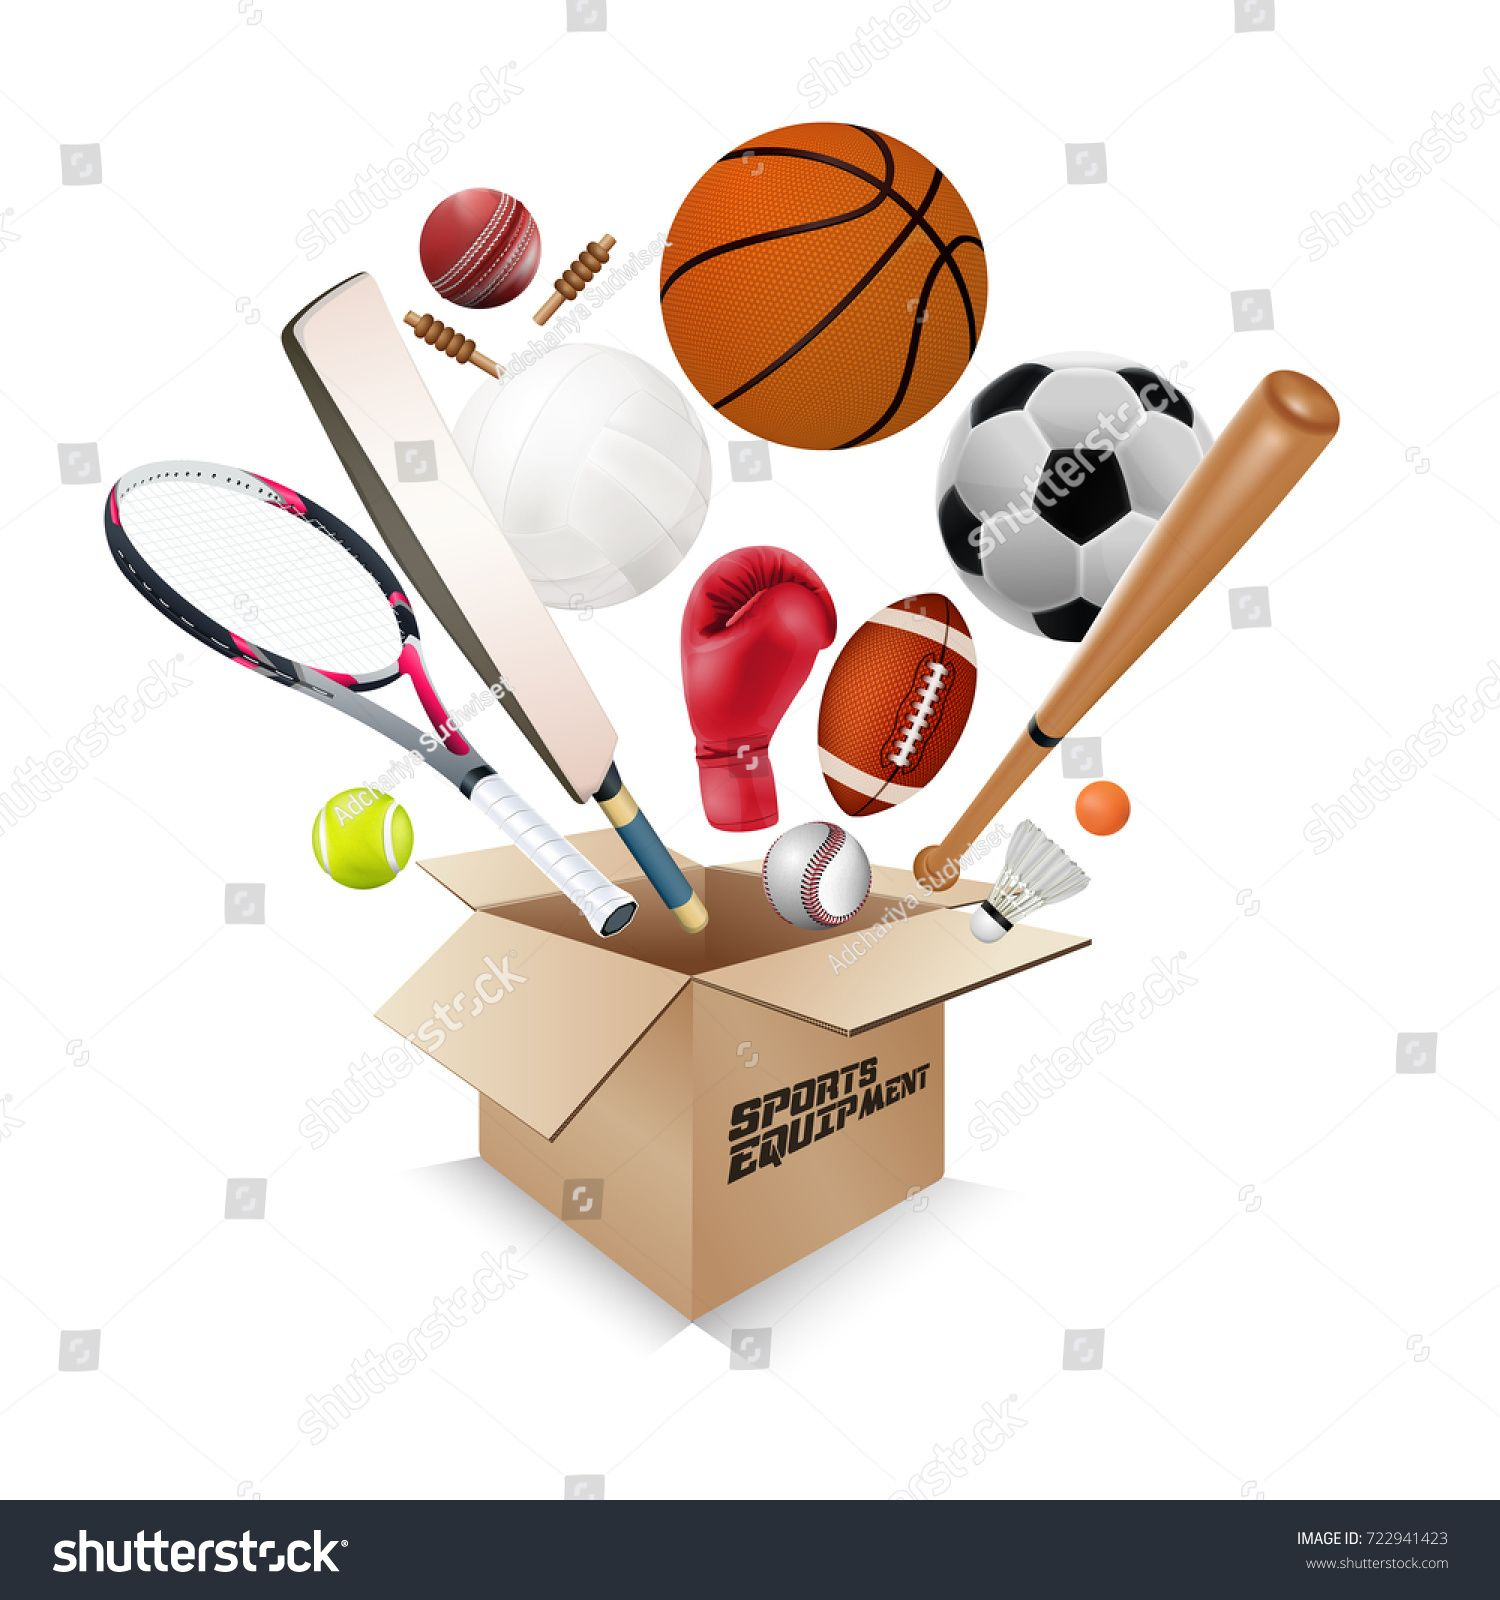 Sports Equipment Collection Out Of Box With A Football Basketball Baseball Soccer Tennis Ball Volleyball Boxing Gloves Sports Equipment Sports Football